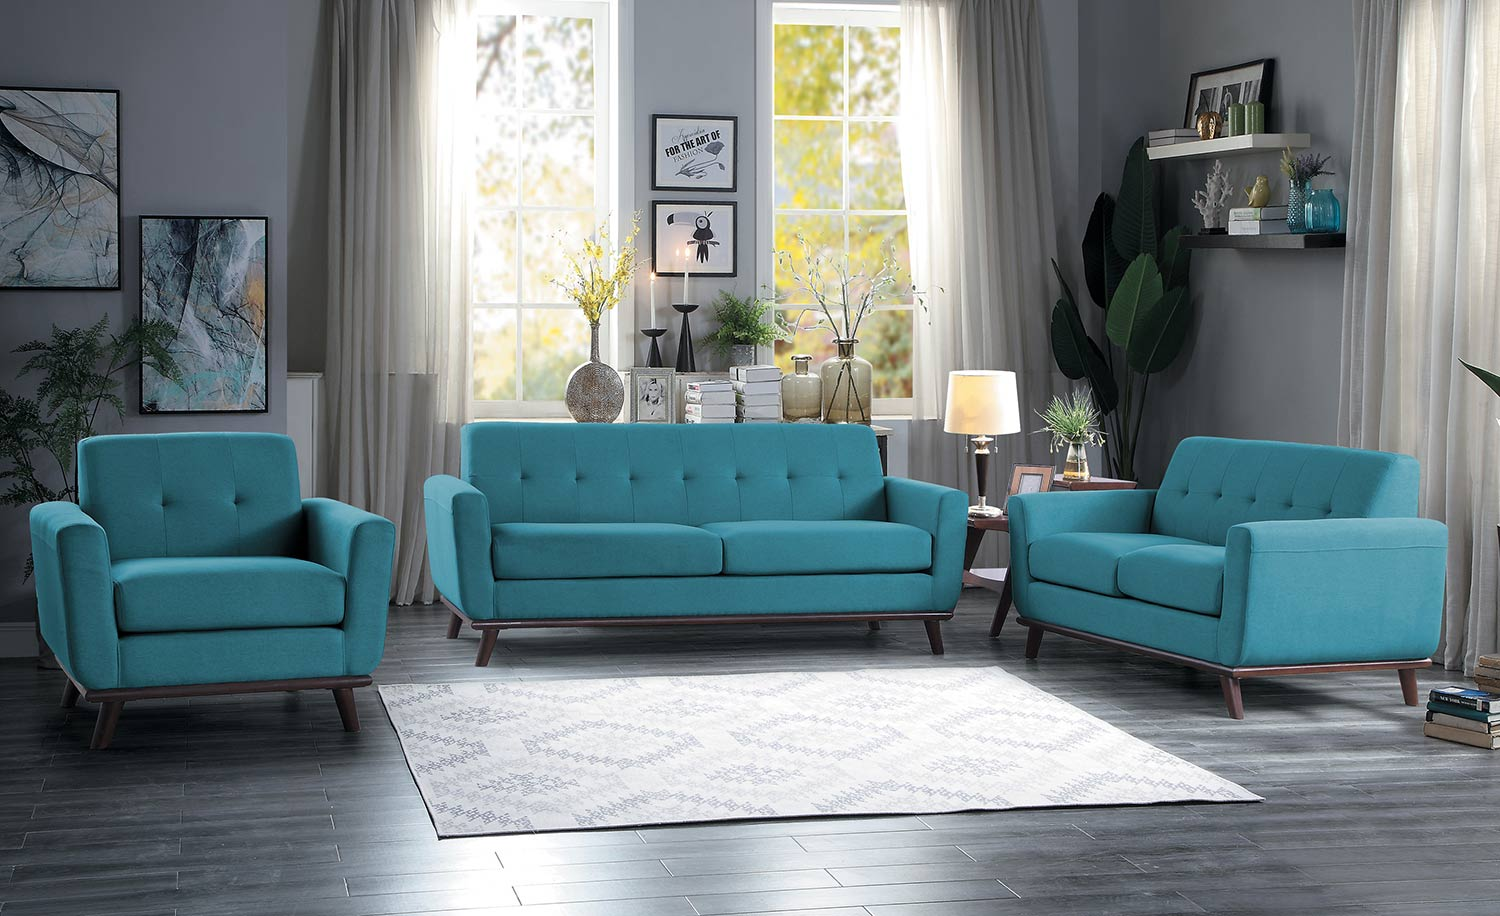 Homelegance Rittman Sofa Set - Blue